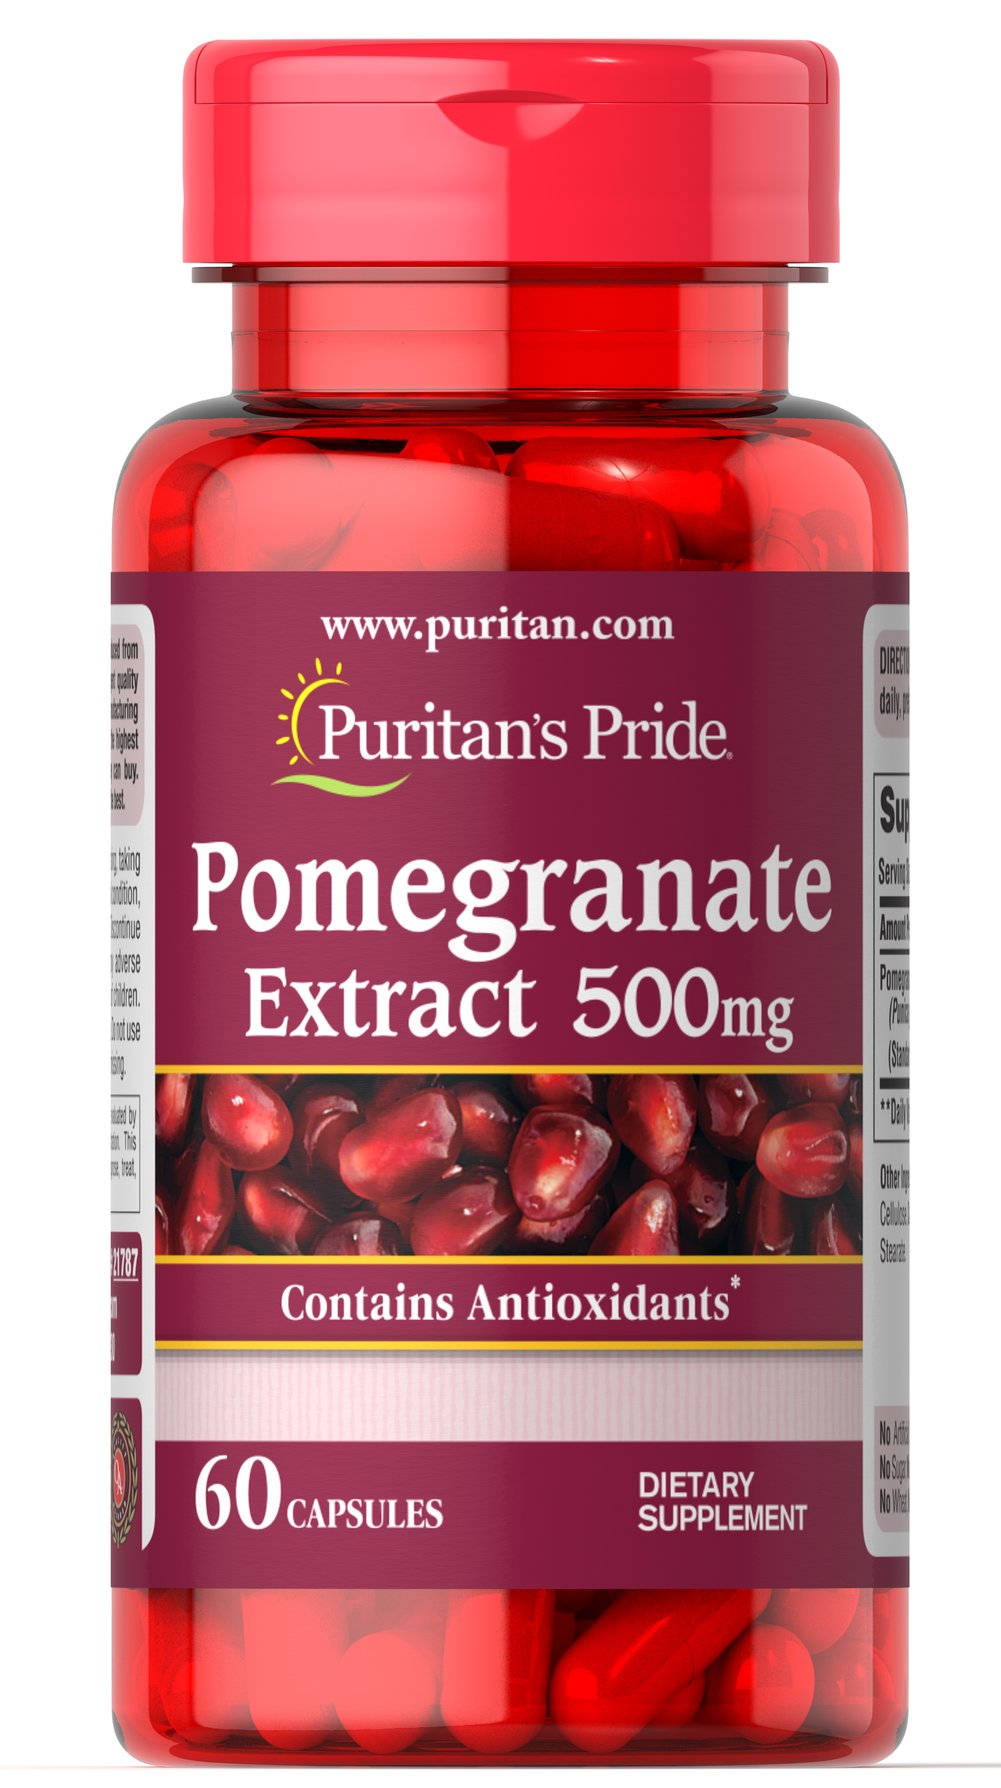 Pomegranate Extract 500mg